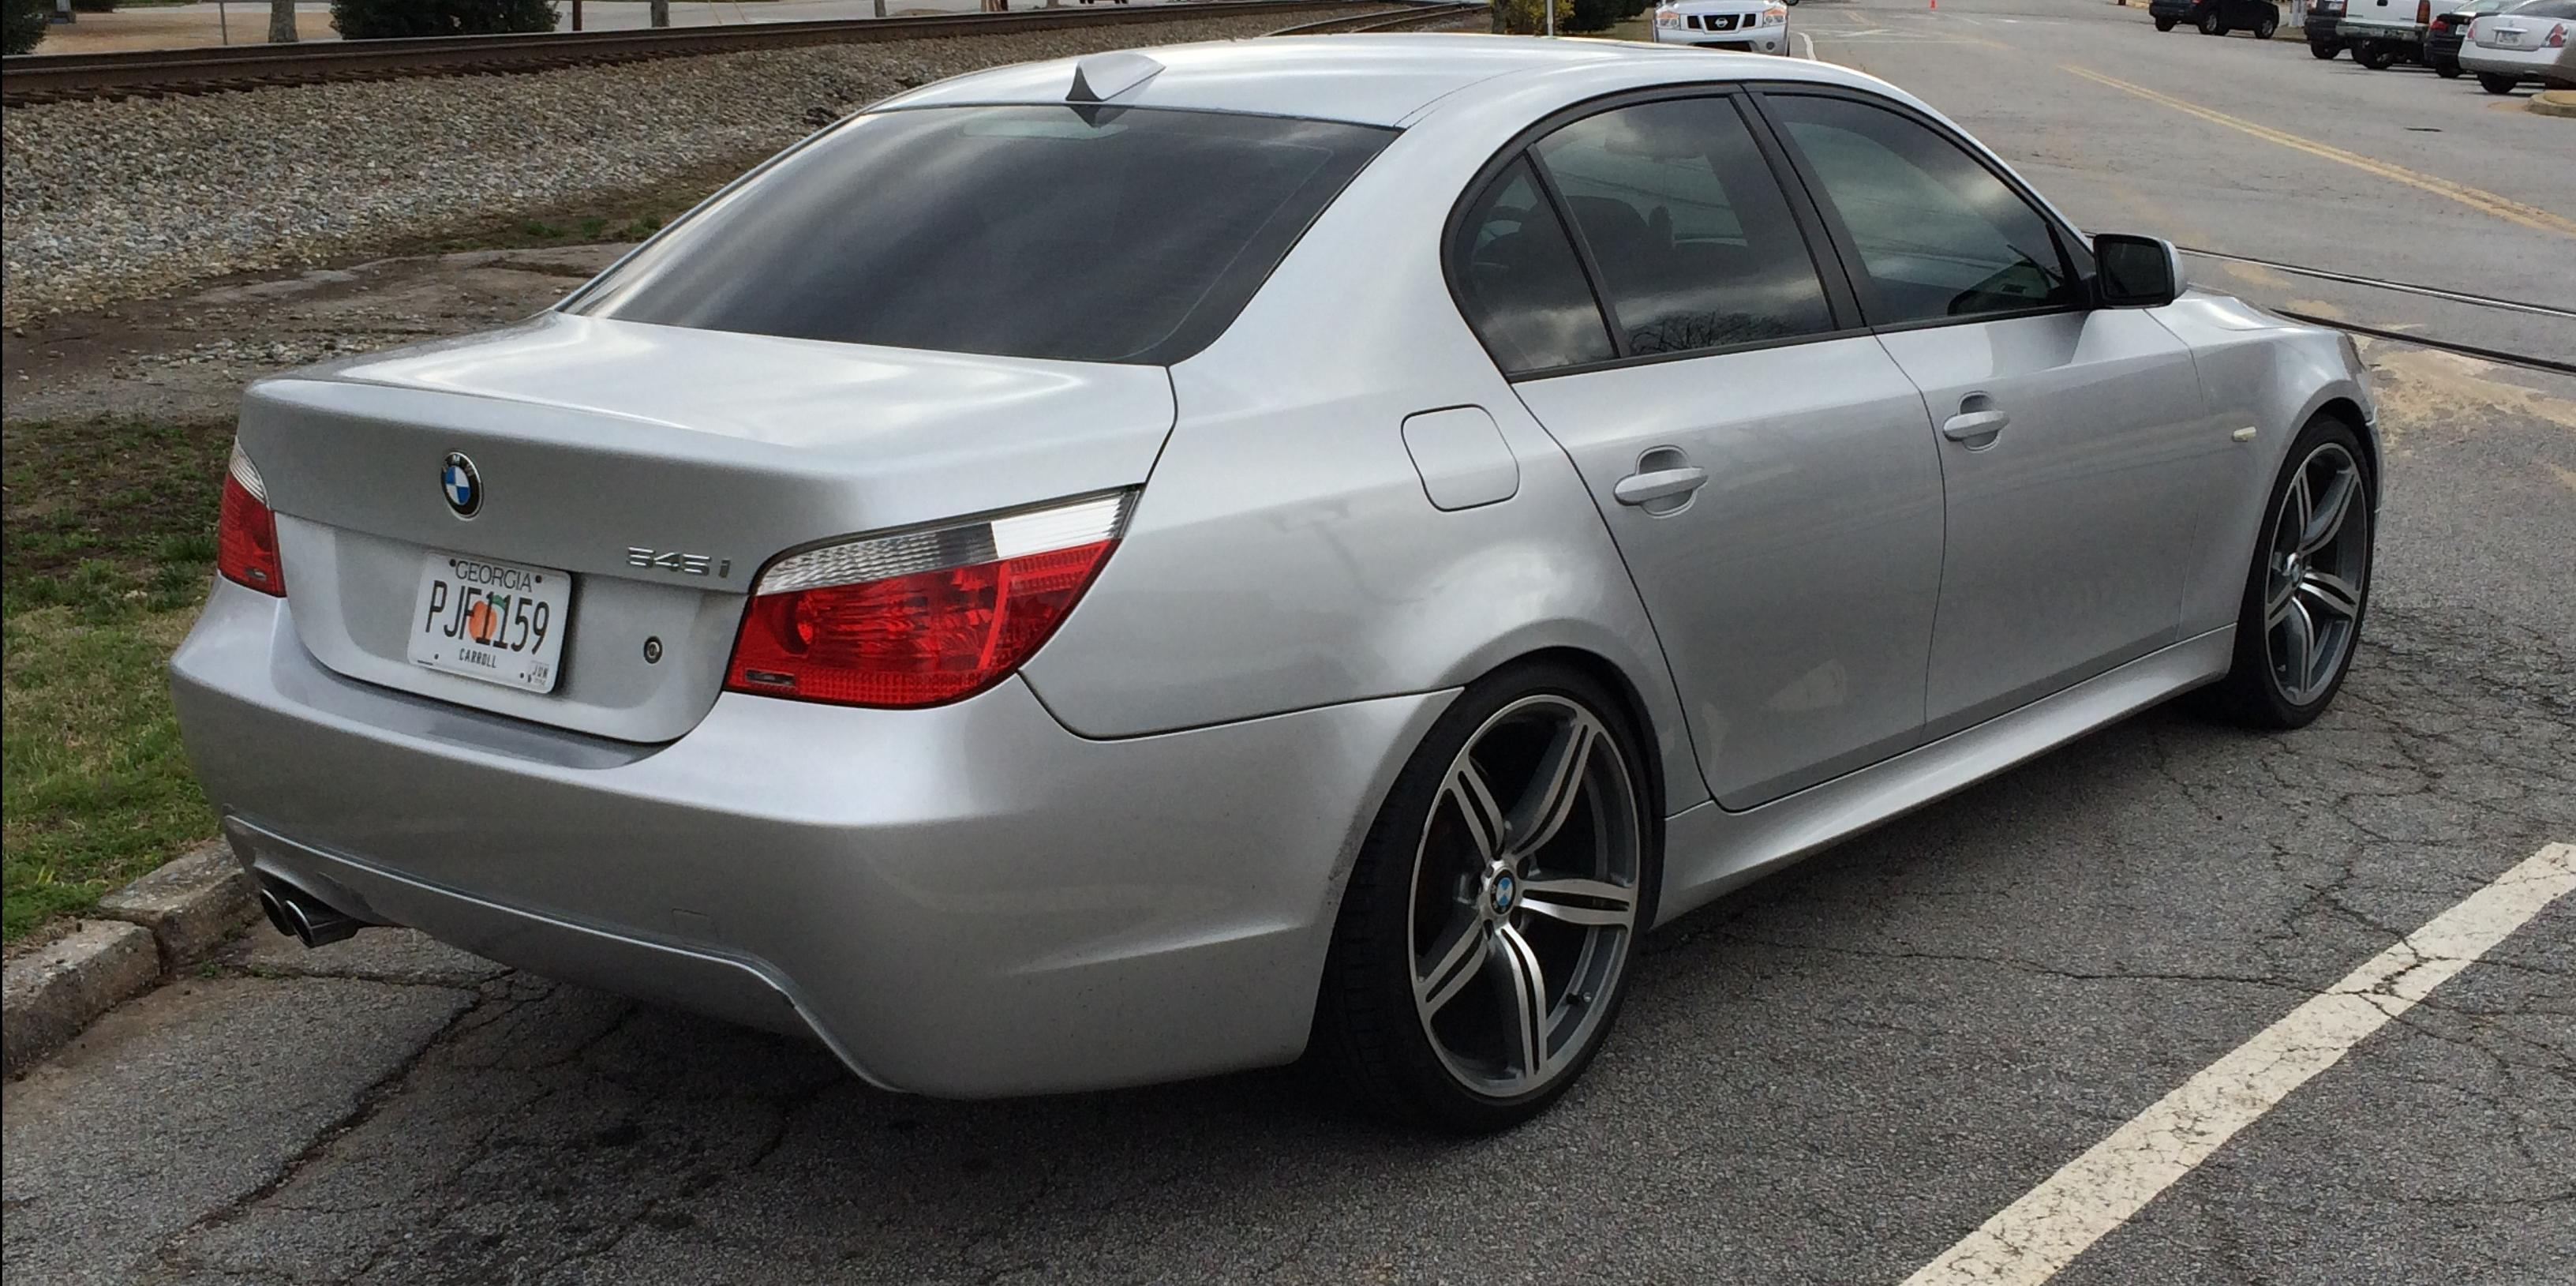 BMW Series Page View All BMW Series At CarDomain - 2008 bmw 545i